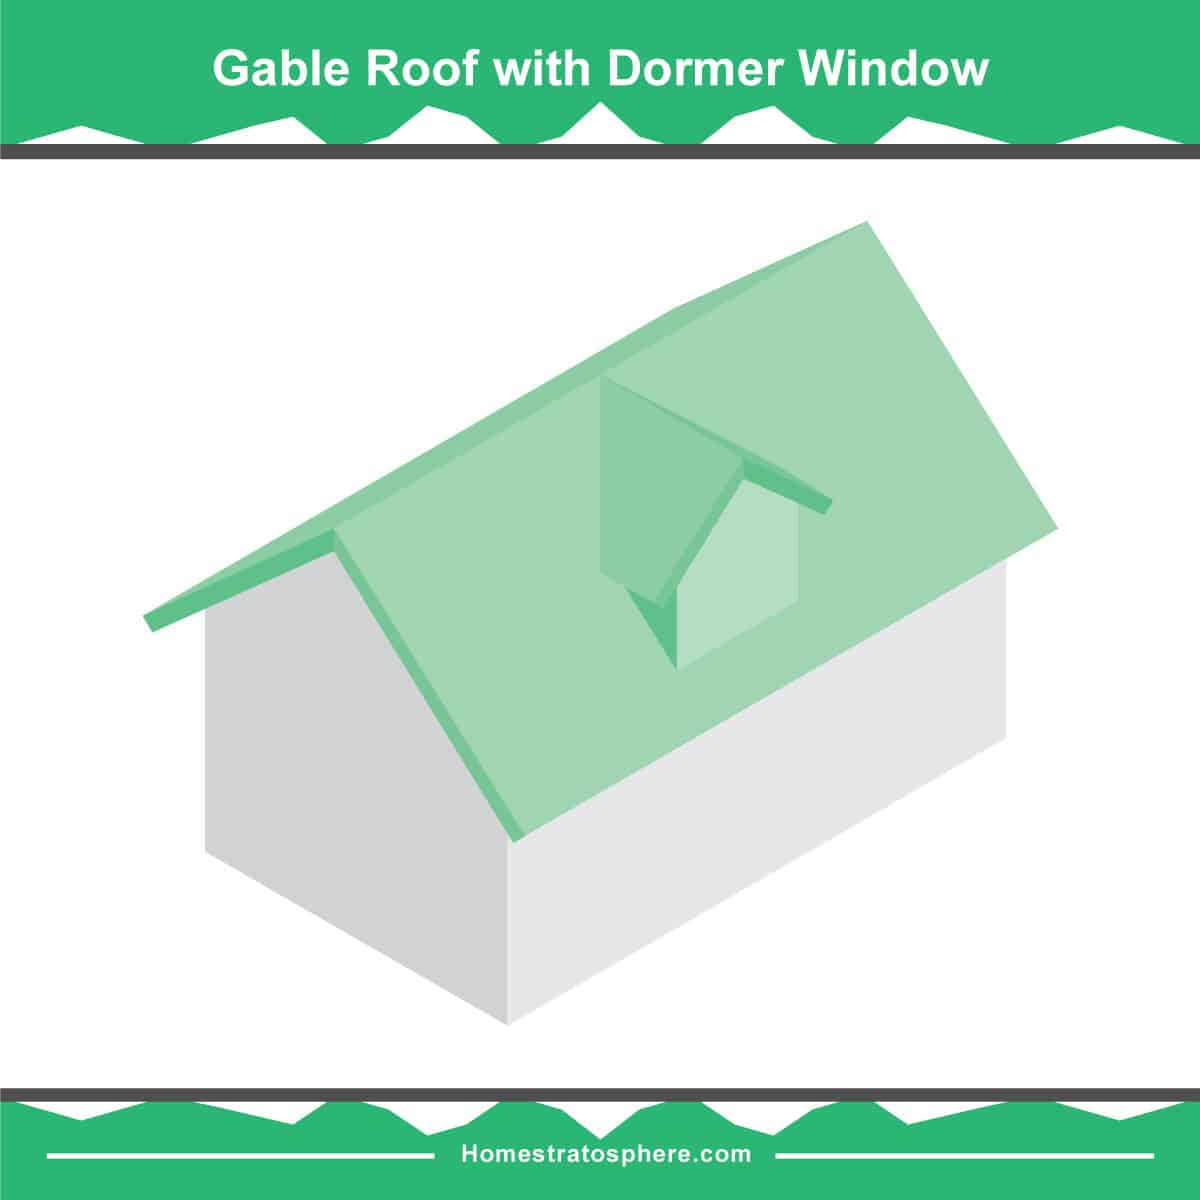 Gable roof with dormer window diagram